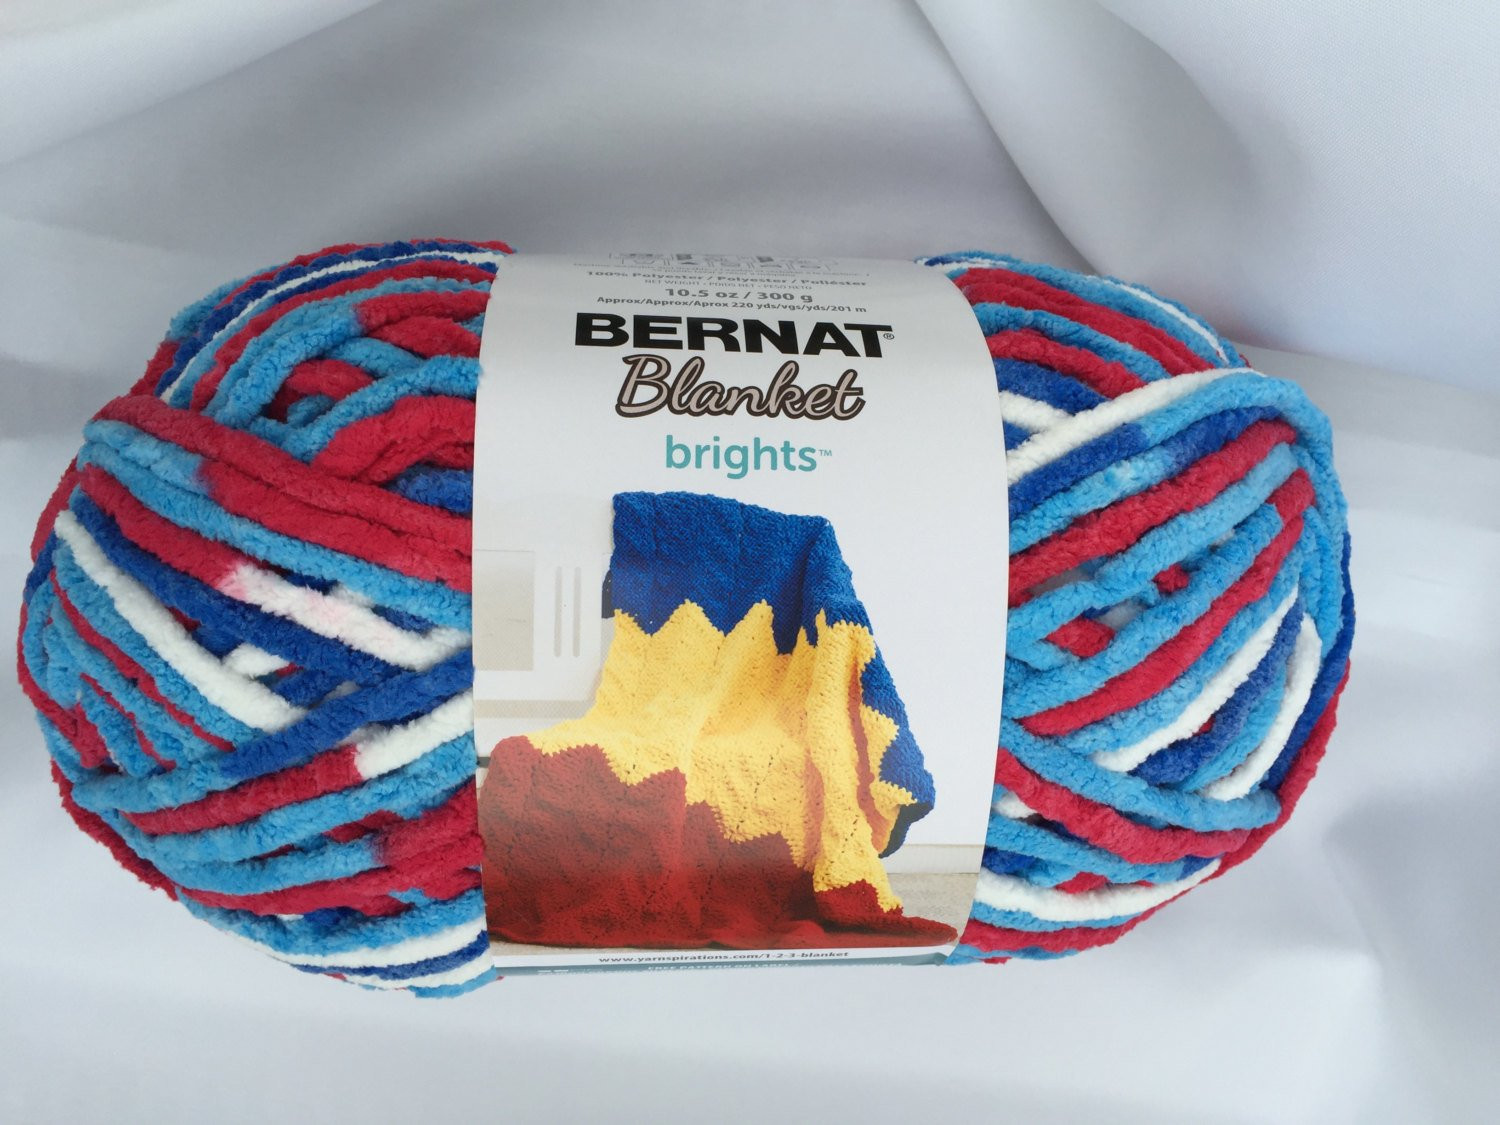 Bernat Blanket Brights Elegant Bernat Blanket Brights Red White & Boom Yarn Big 10 5 Of Amazing 42 Pictures Bernat Blanket Brights